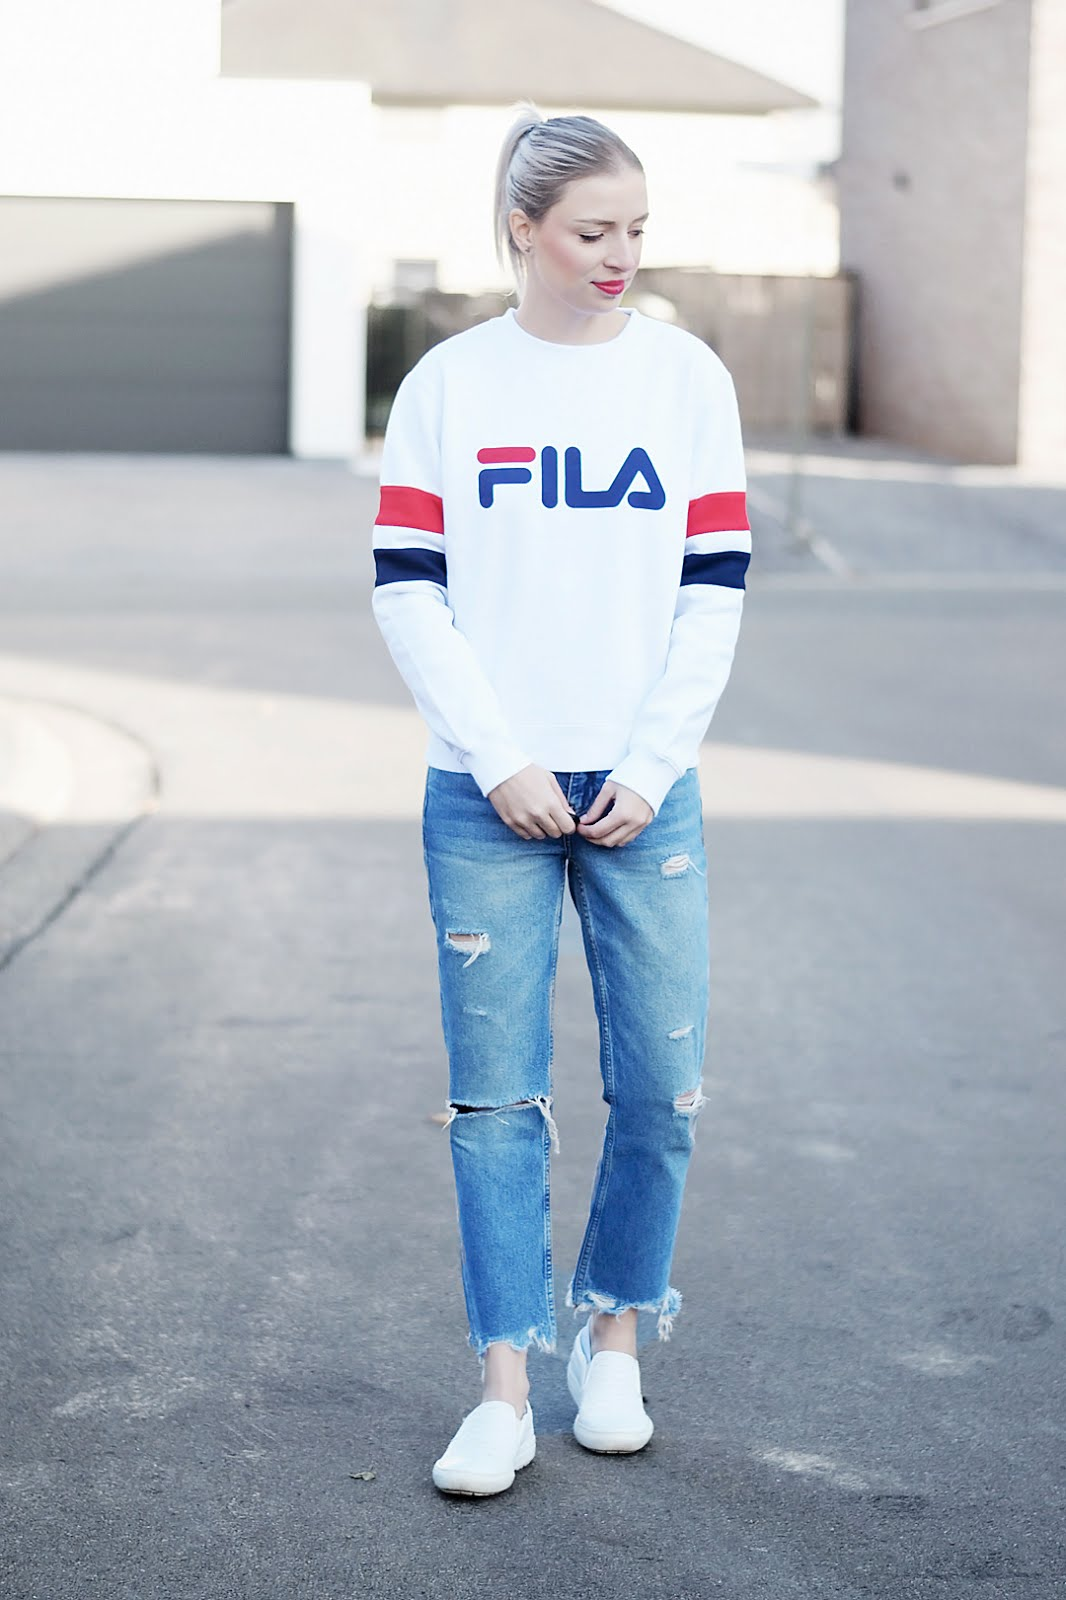 Fila, style guide, jd sports, sweatshirt, mango, ripped jeans, zara slip on